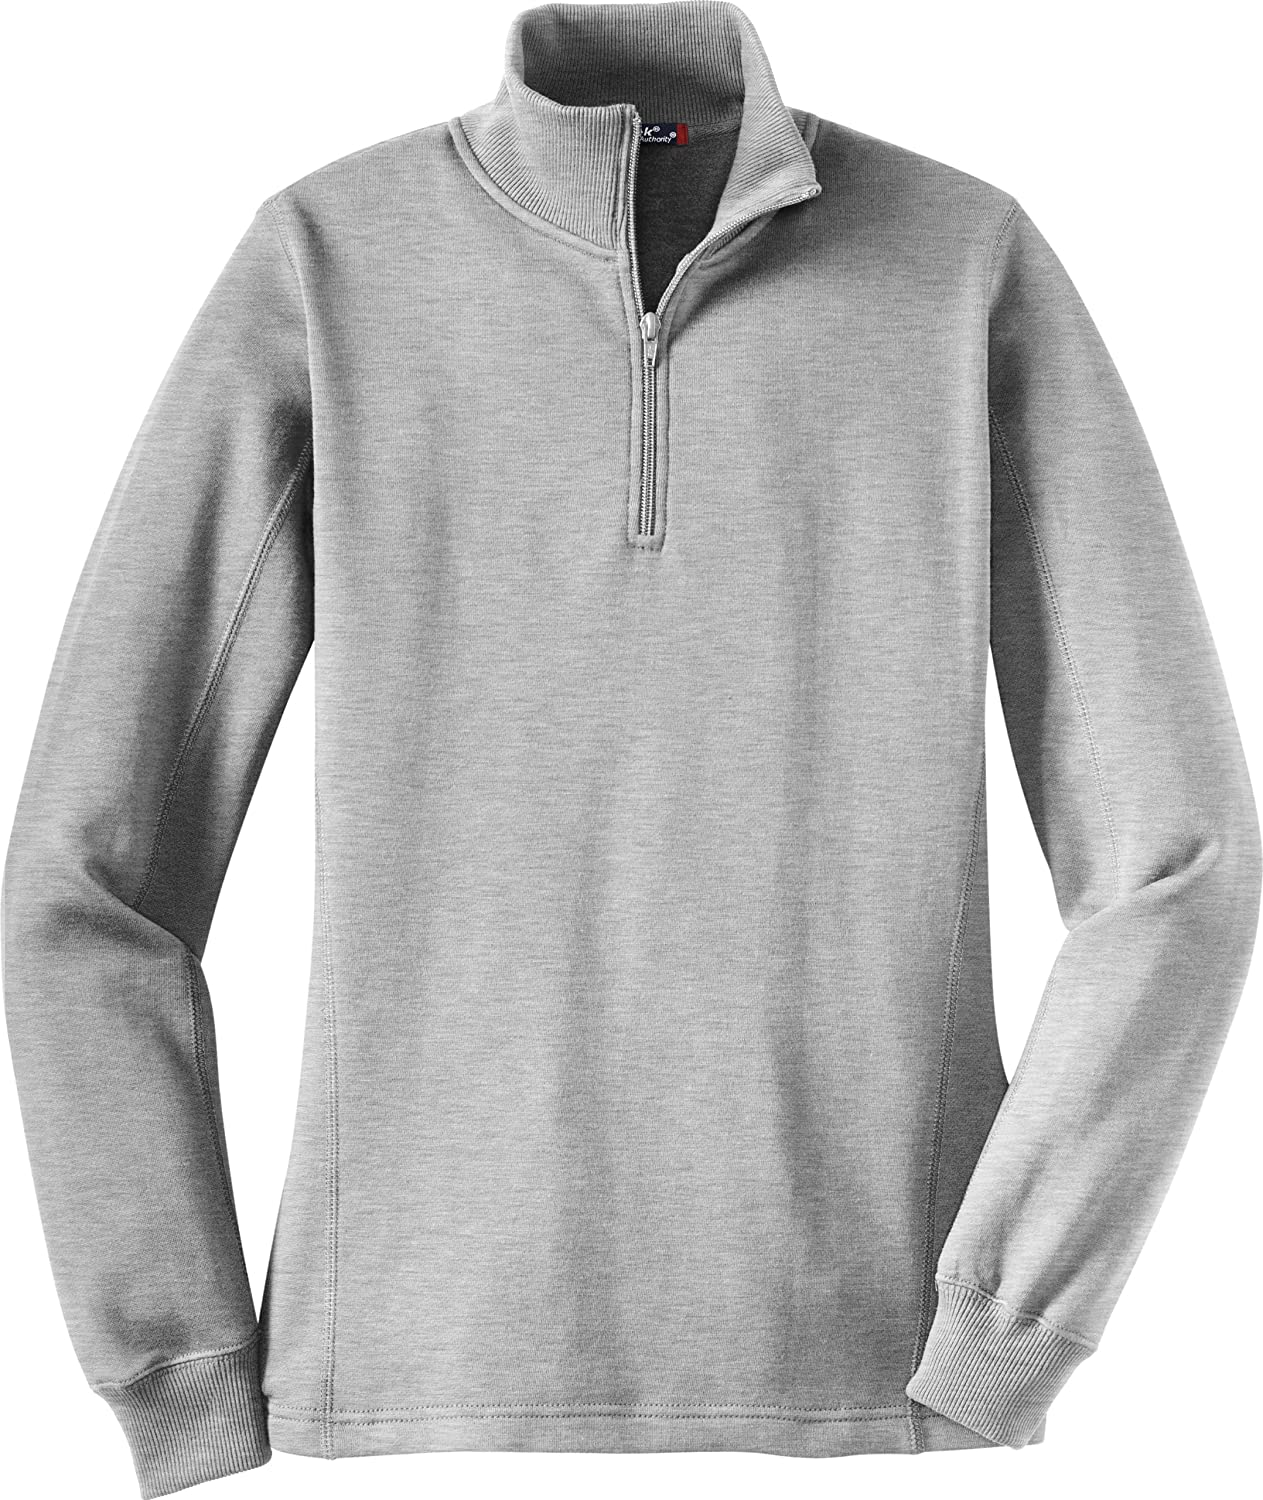 Sport-Tek Women's 1/4 Zip Sweatshirt at Amazon Women's Clothing store: